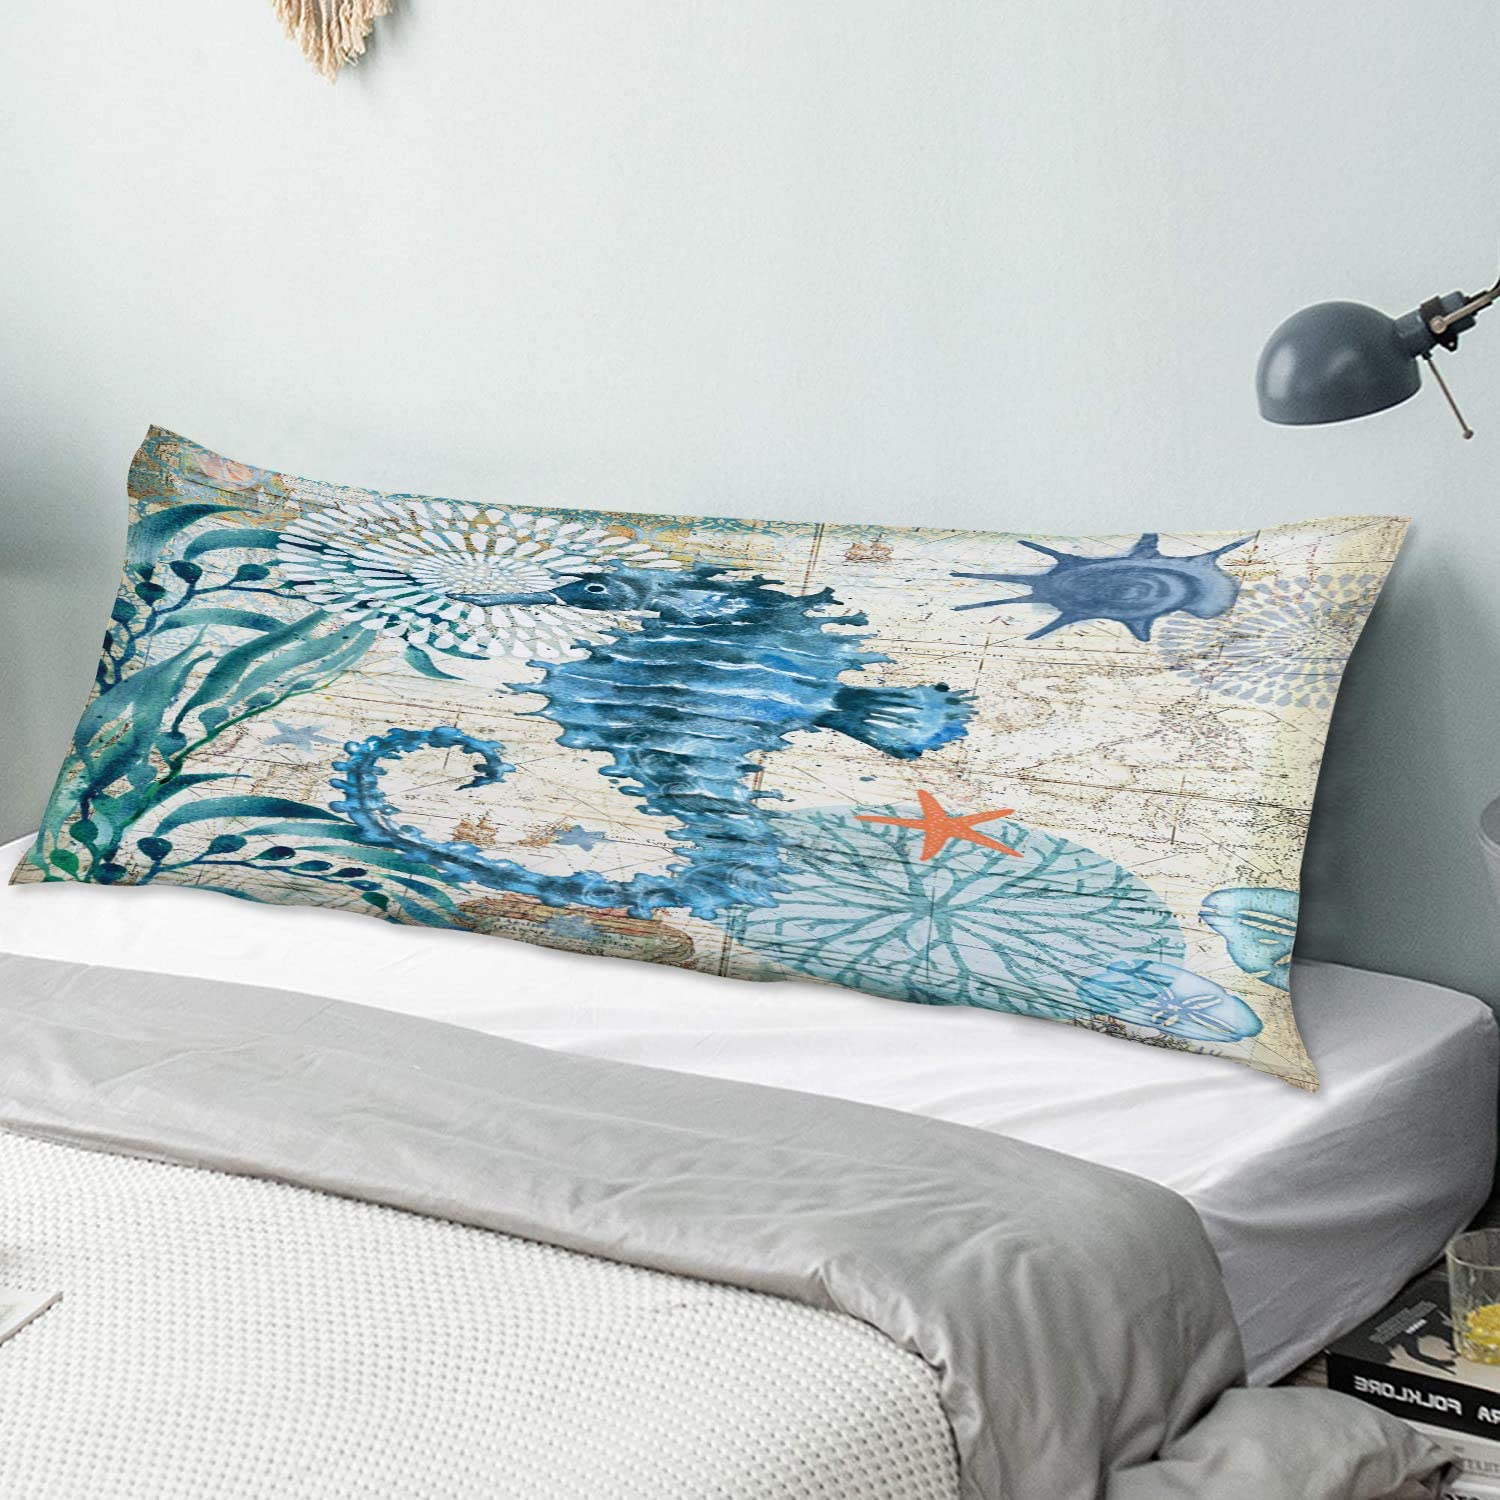 NINEHASA Body Pillow Pillowcase A Large Dark Sea Horse Blue Old Time sale Max 64% OFF